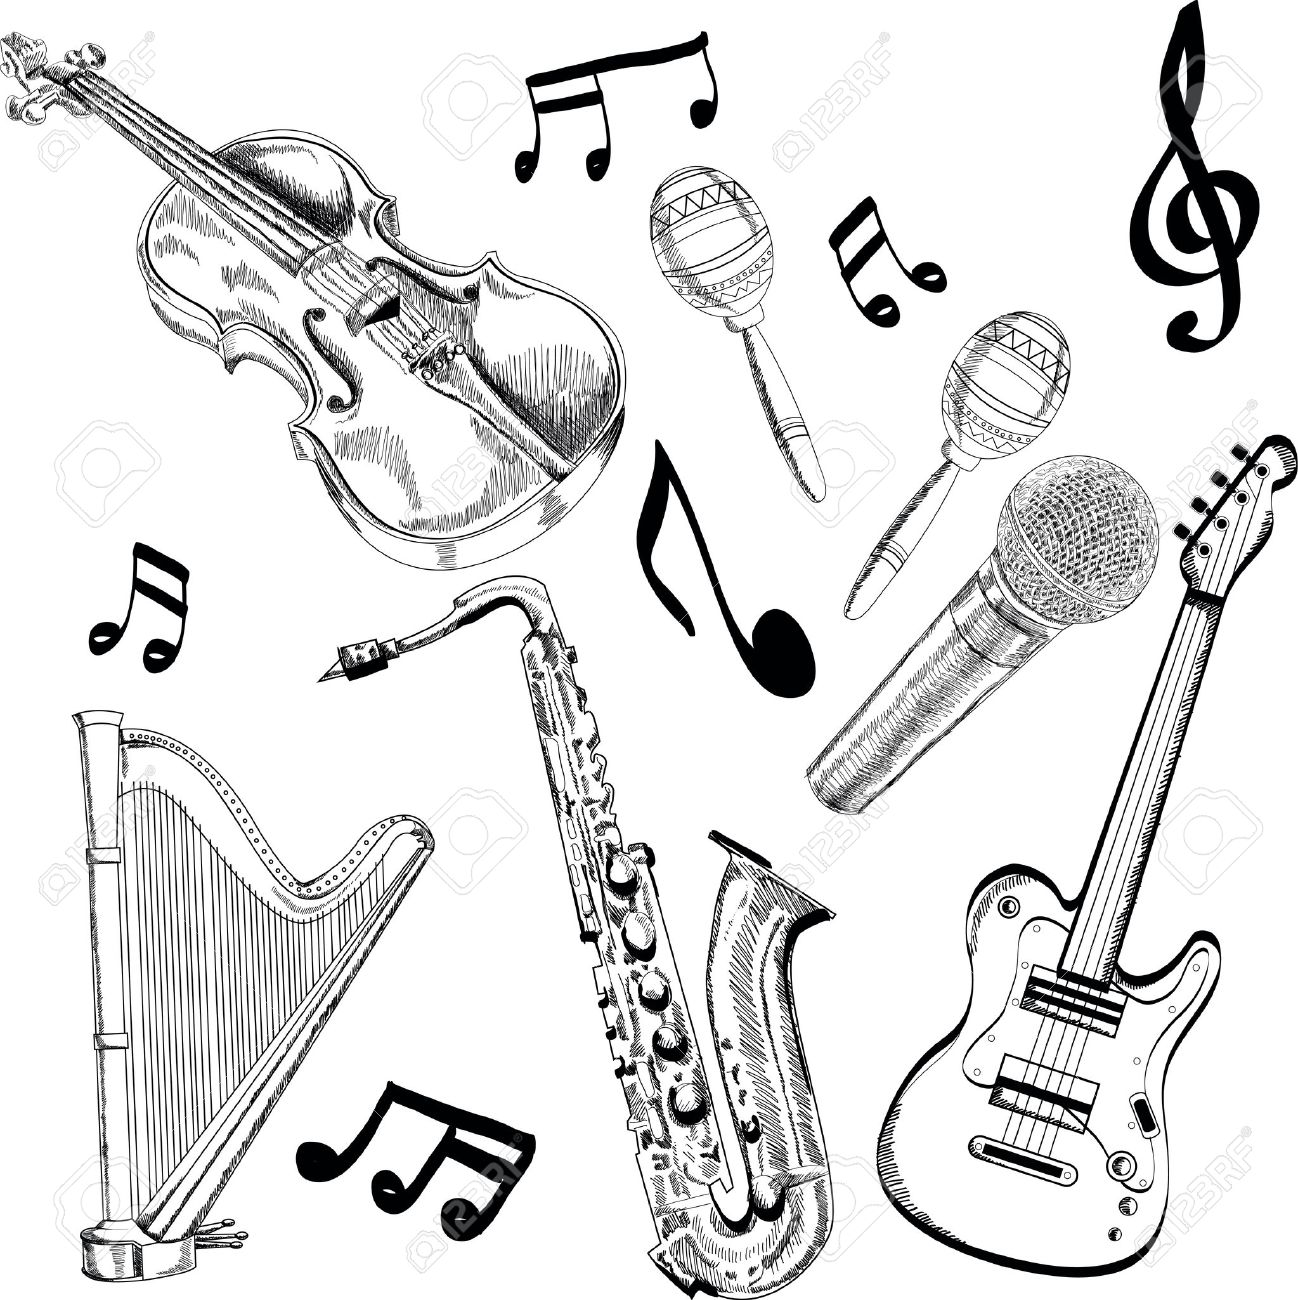 musical instrument drawings set of black and white illustrations of musical instrument musical drawings